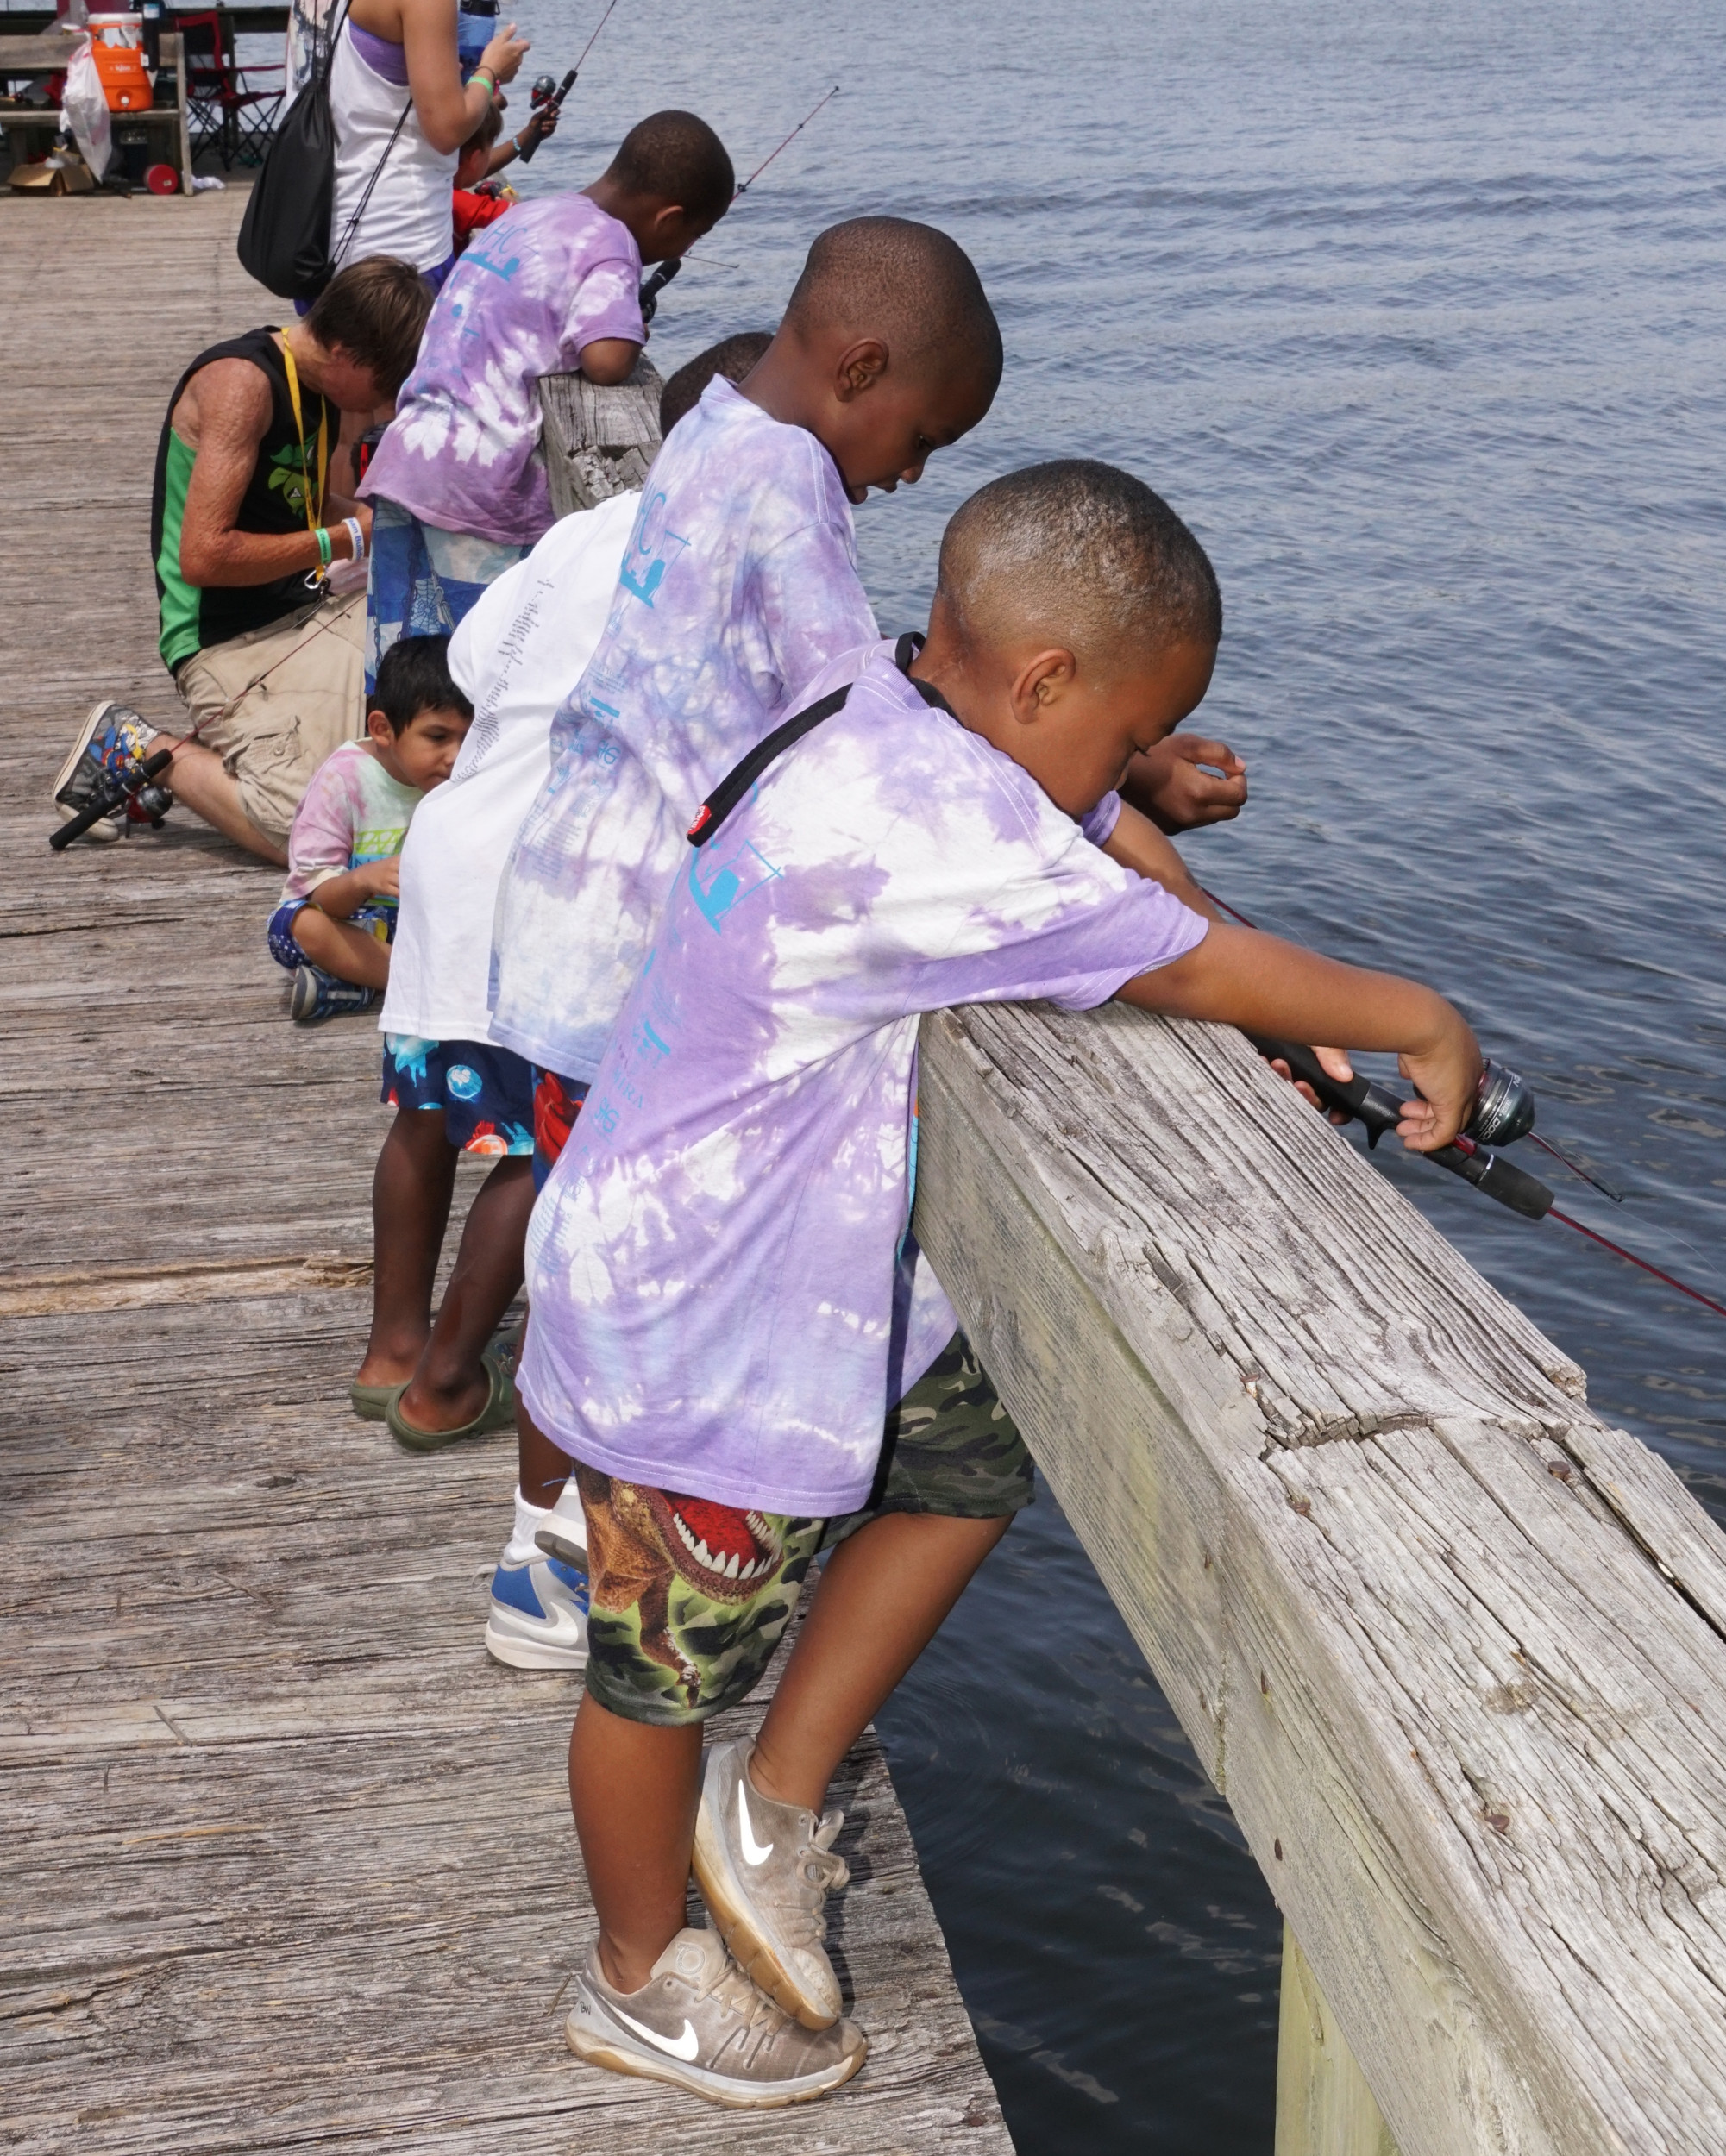 A group of the young campers at Camp Happy Days try their luck at fishing at Lake Marion.